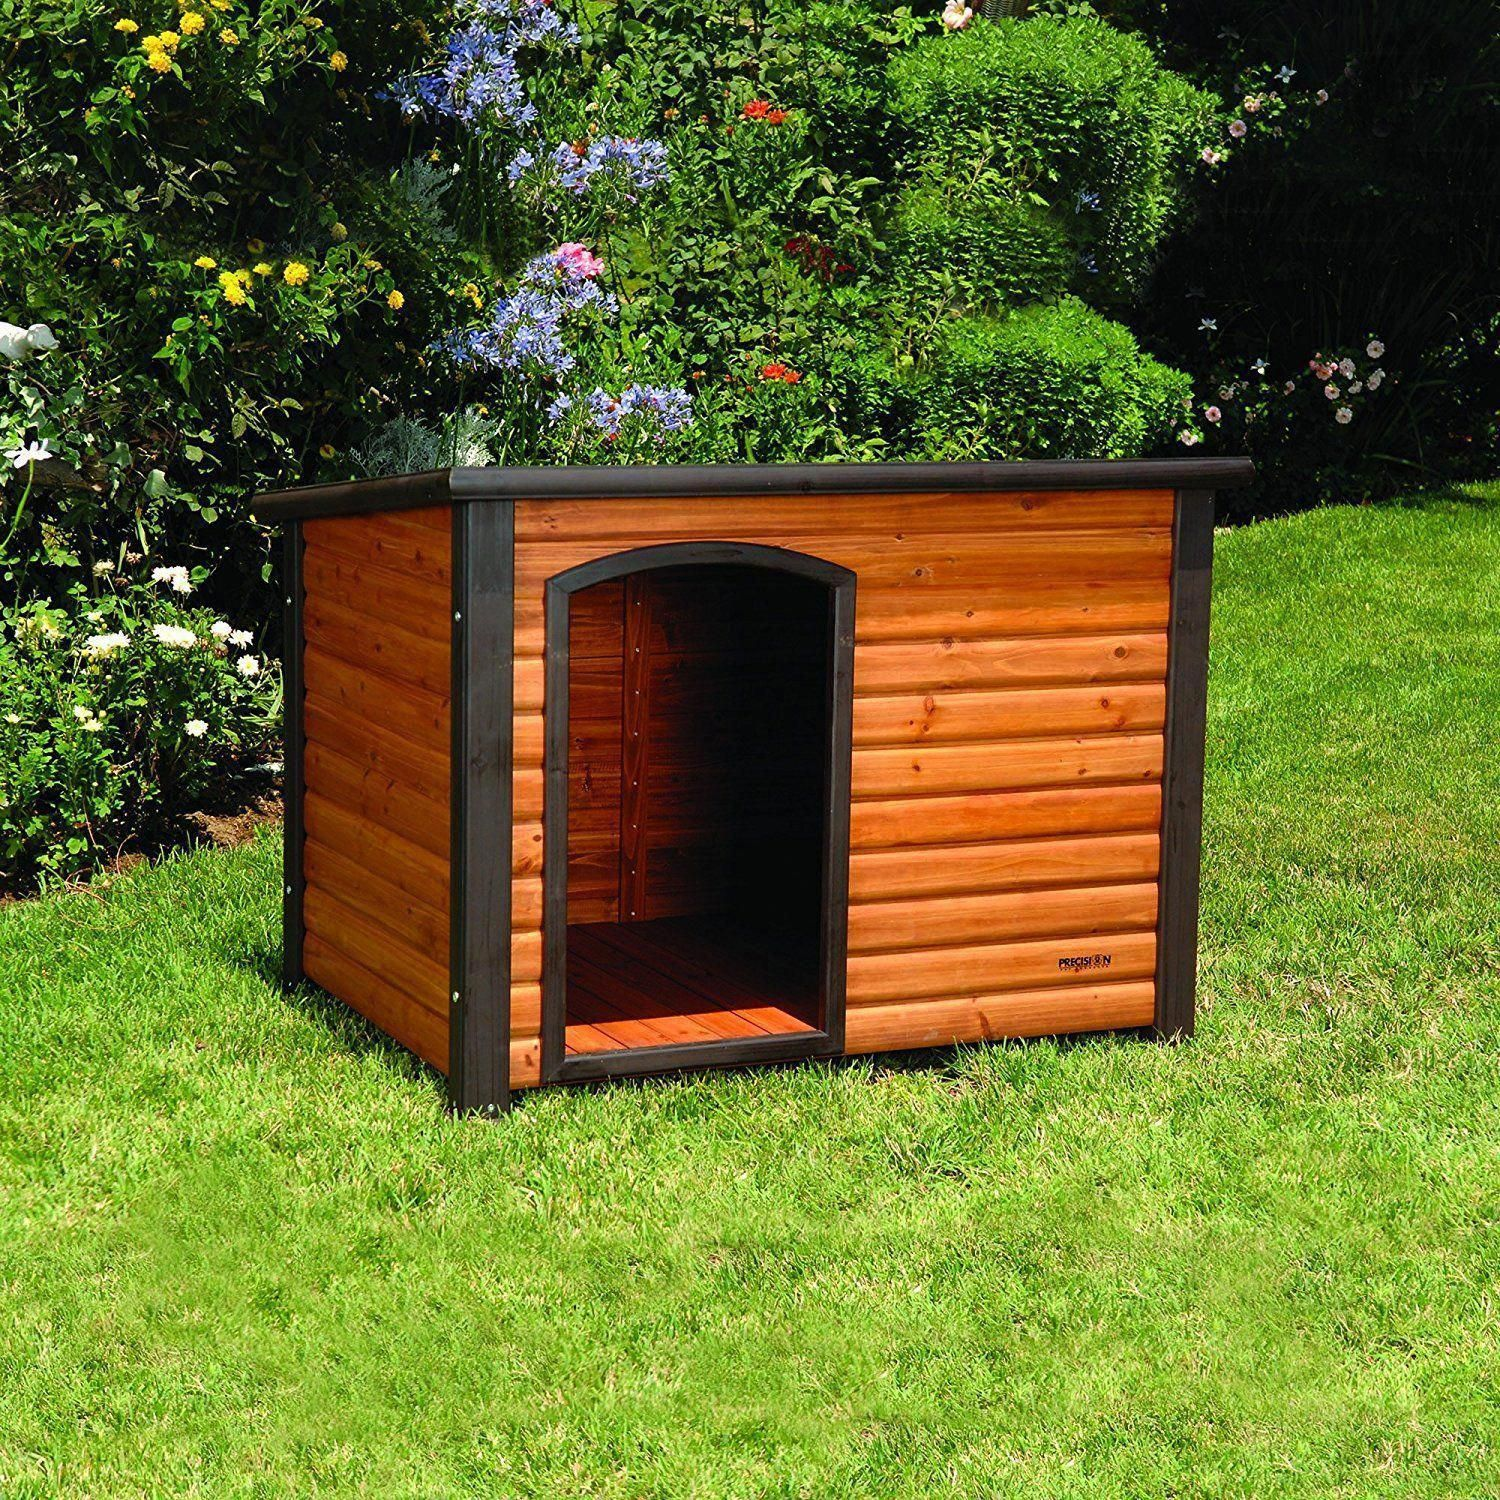 Wooden Dog House Puppy Shelter Outdoor Wood Elevated